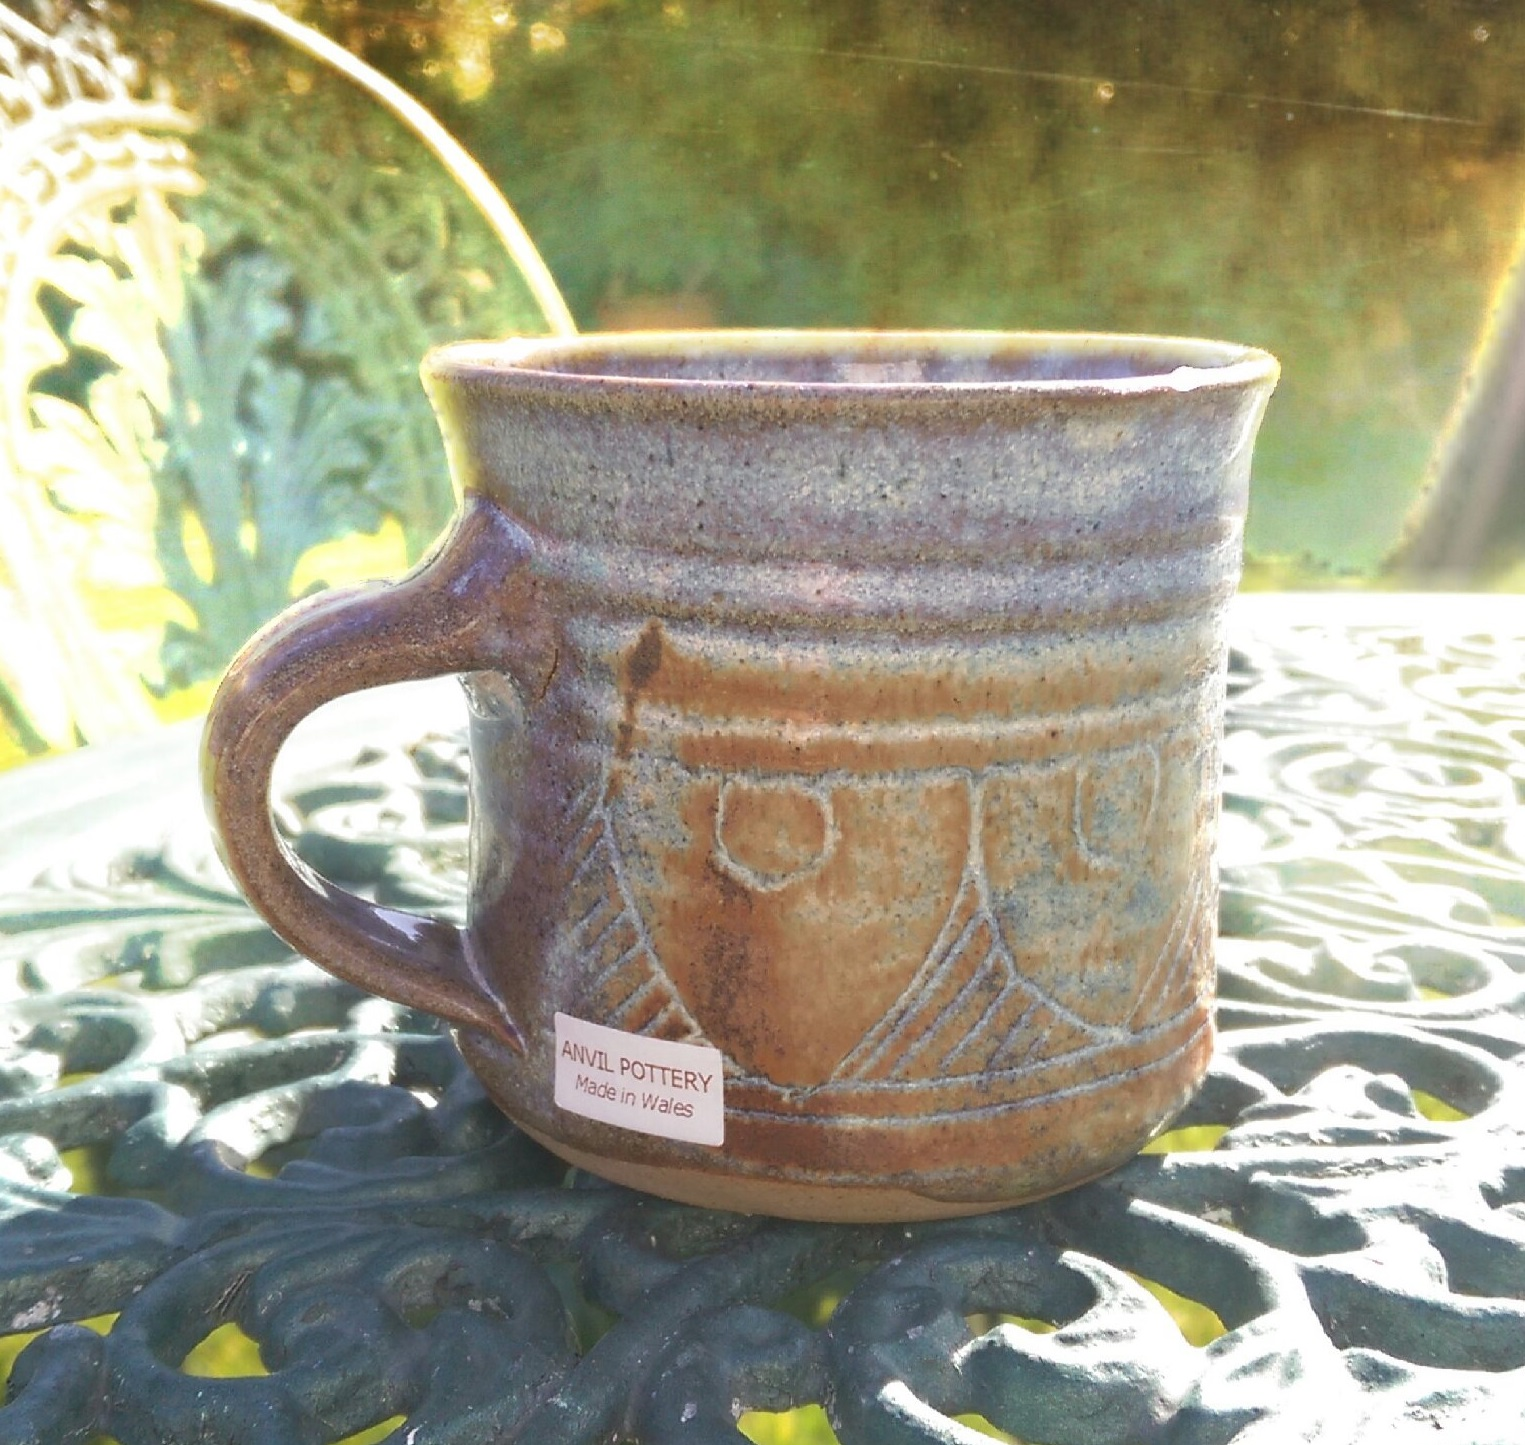 First mug commissioned from Anvil Pottery.